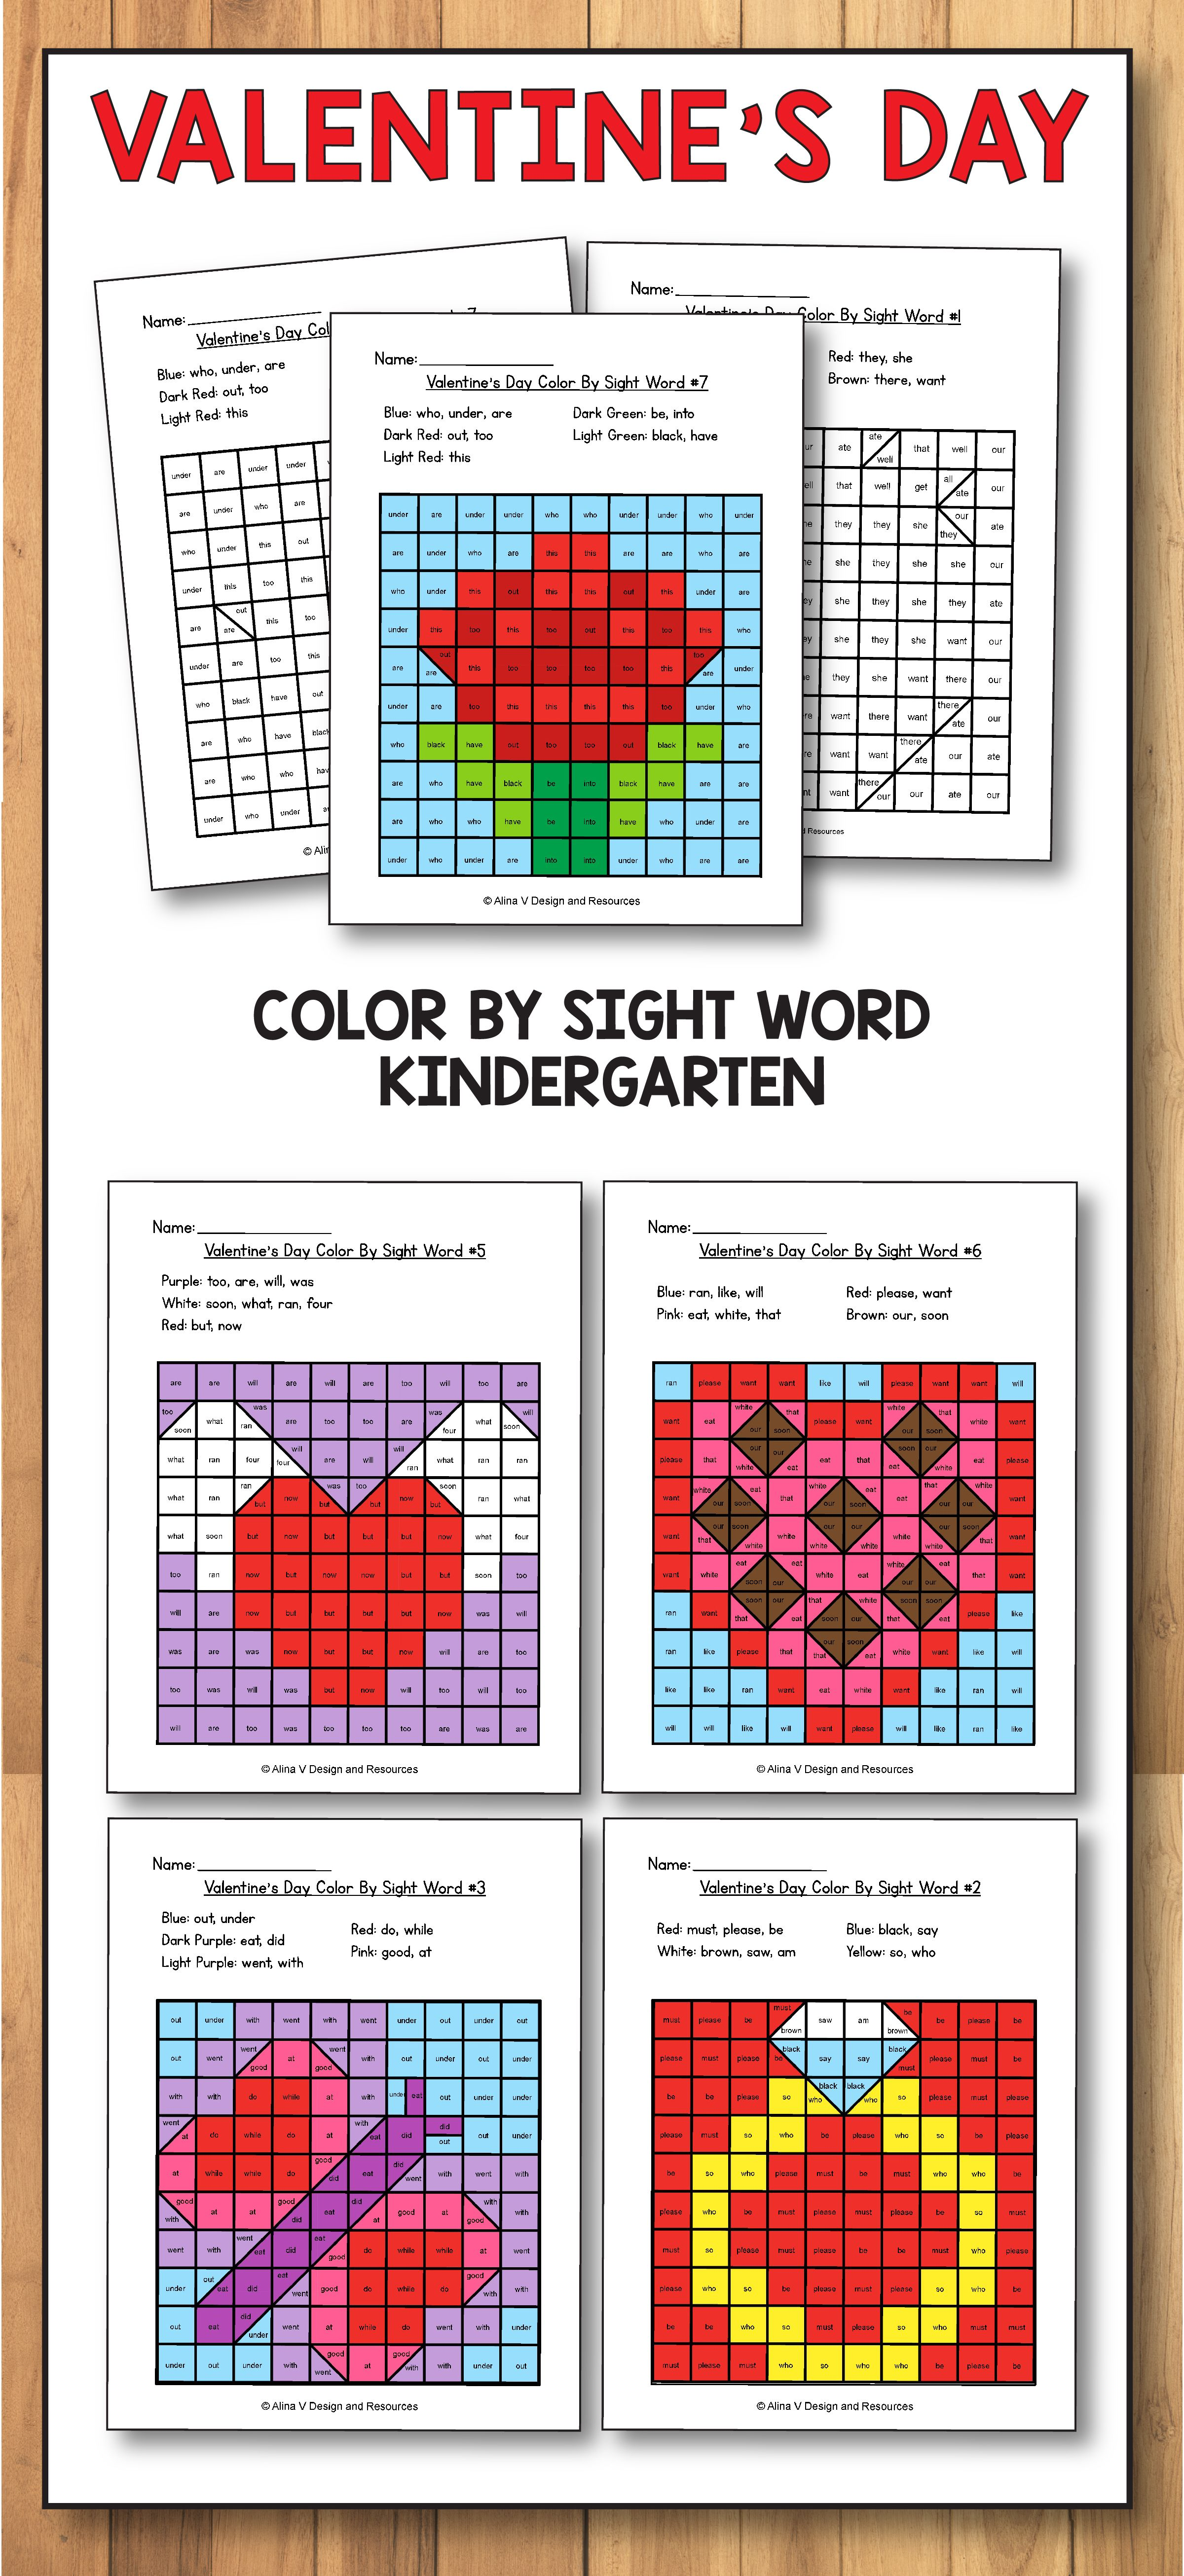 Valentine S Day Color By Sight Word Valentine S Day Activities For Kindergarten Activities For